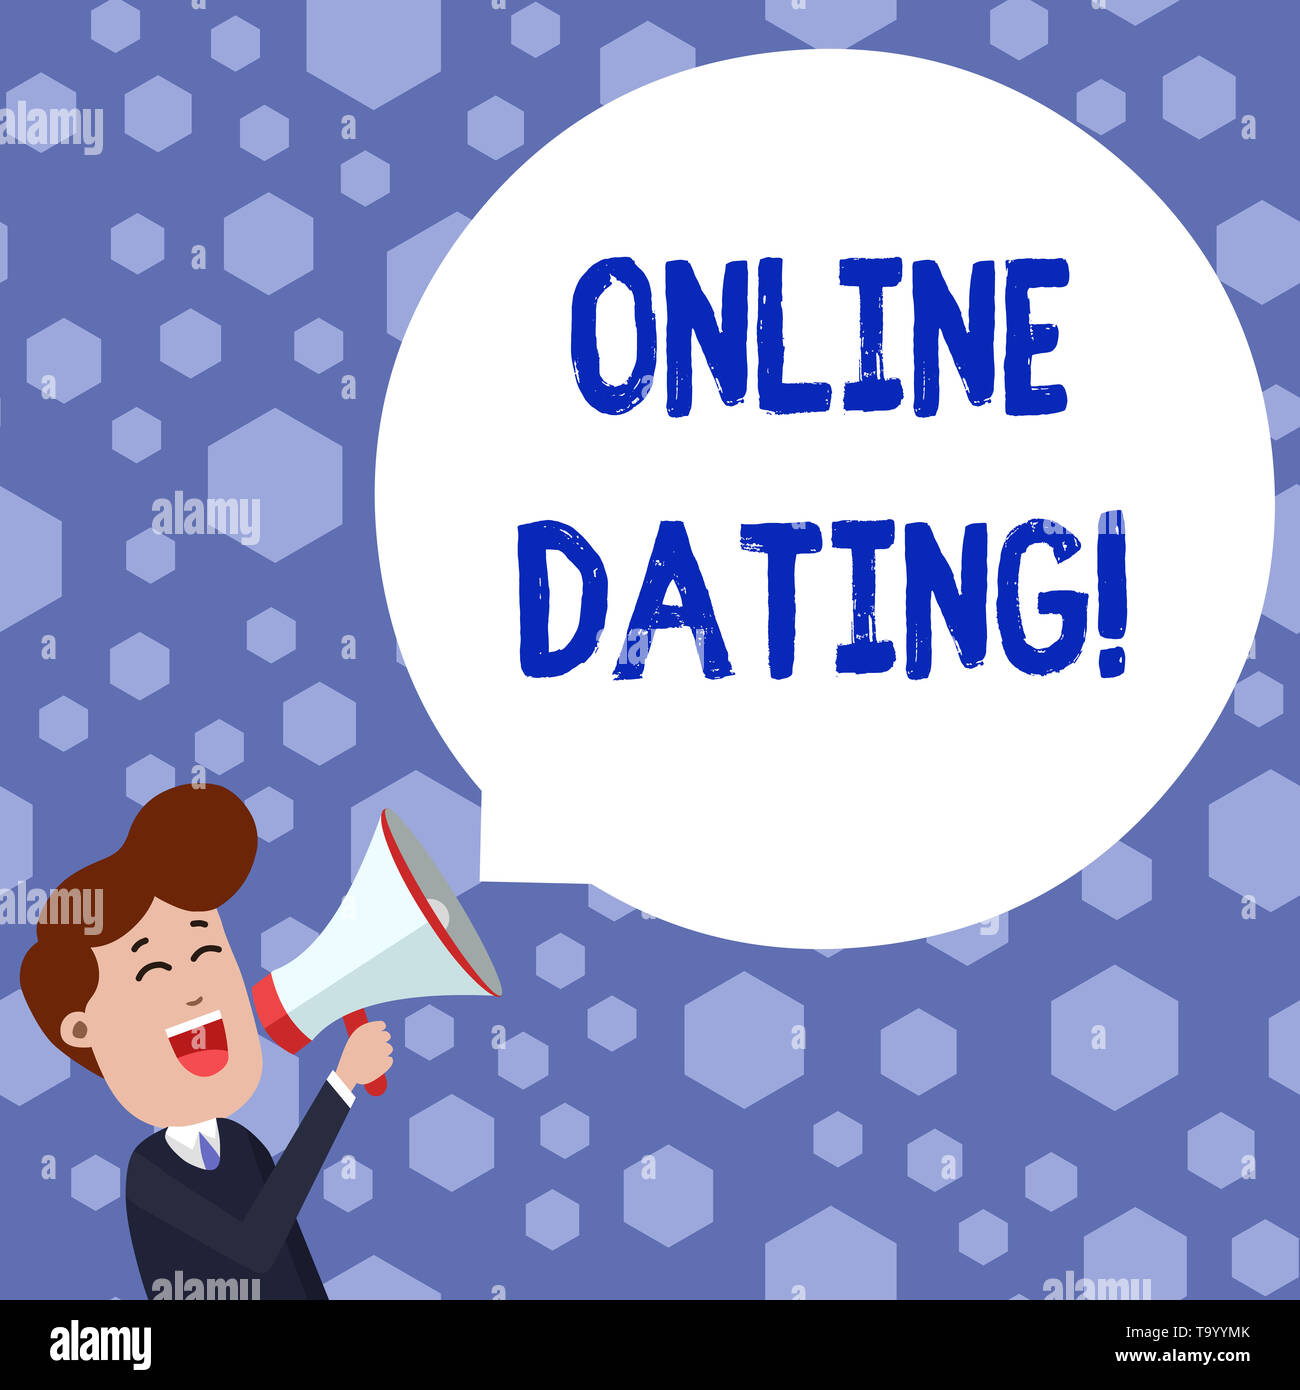 how to start an internet dating business